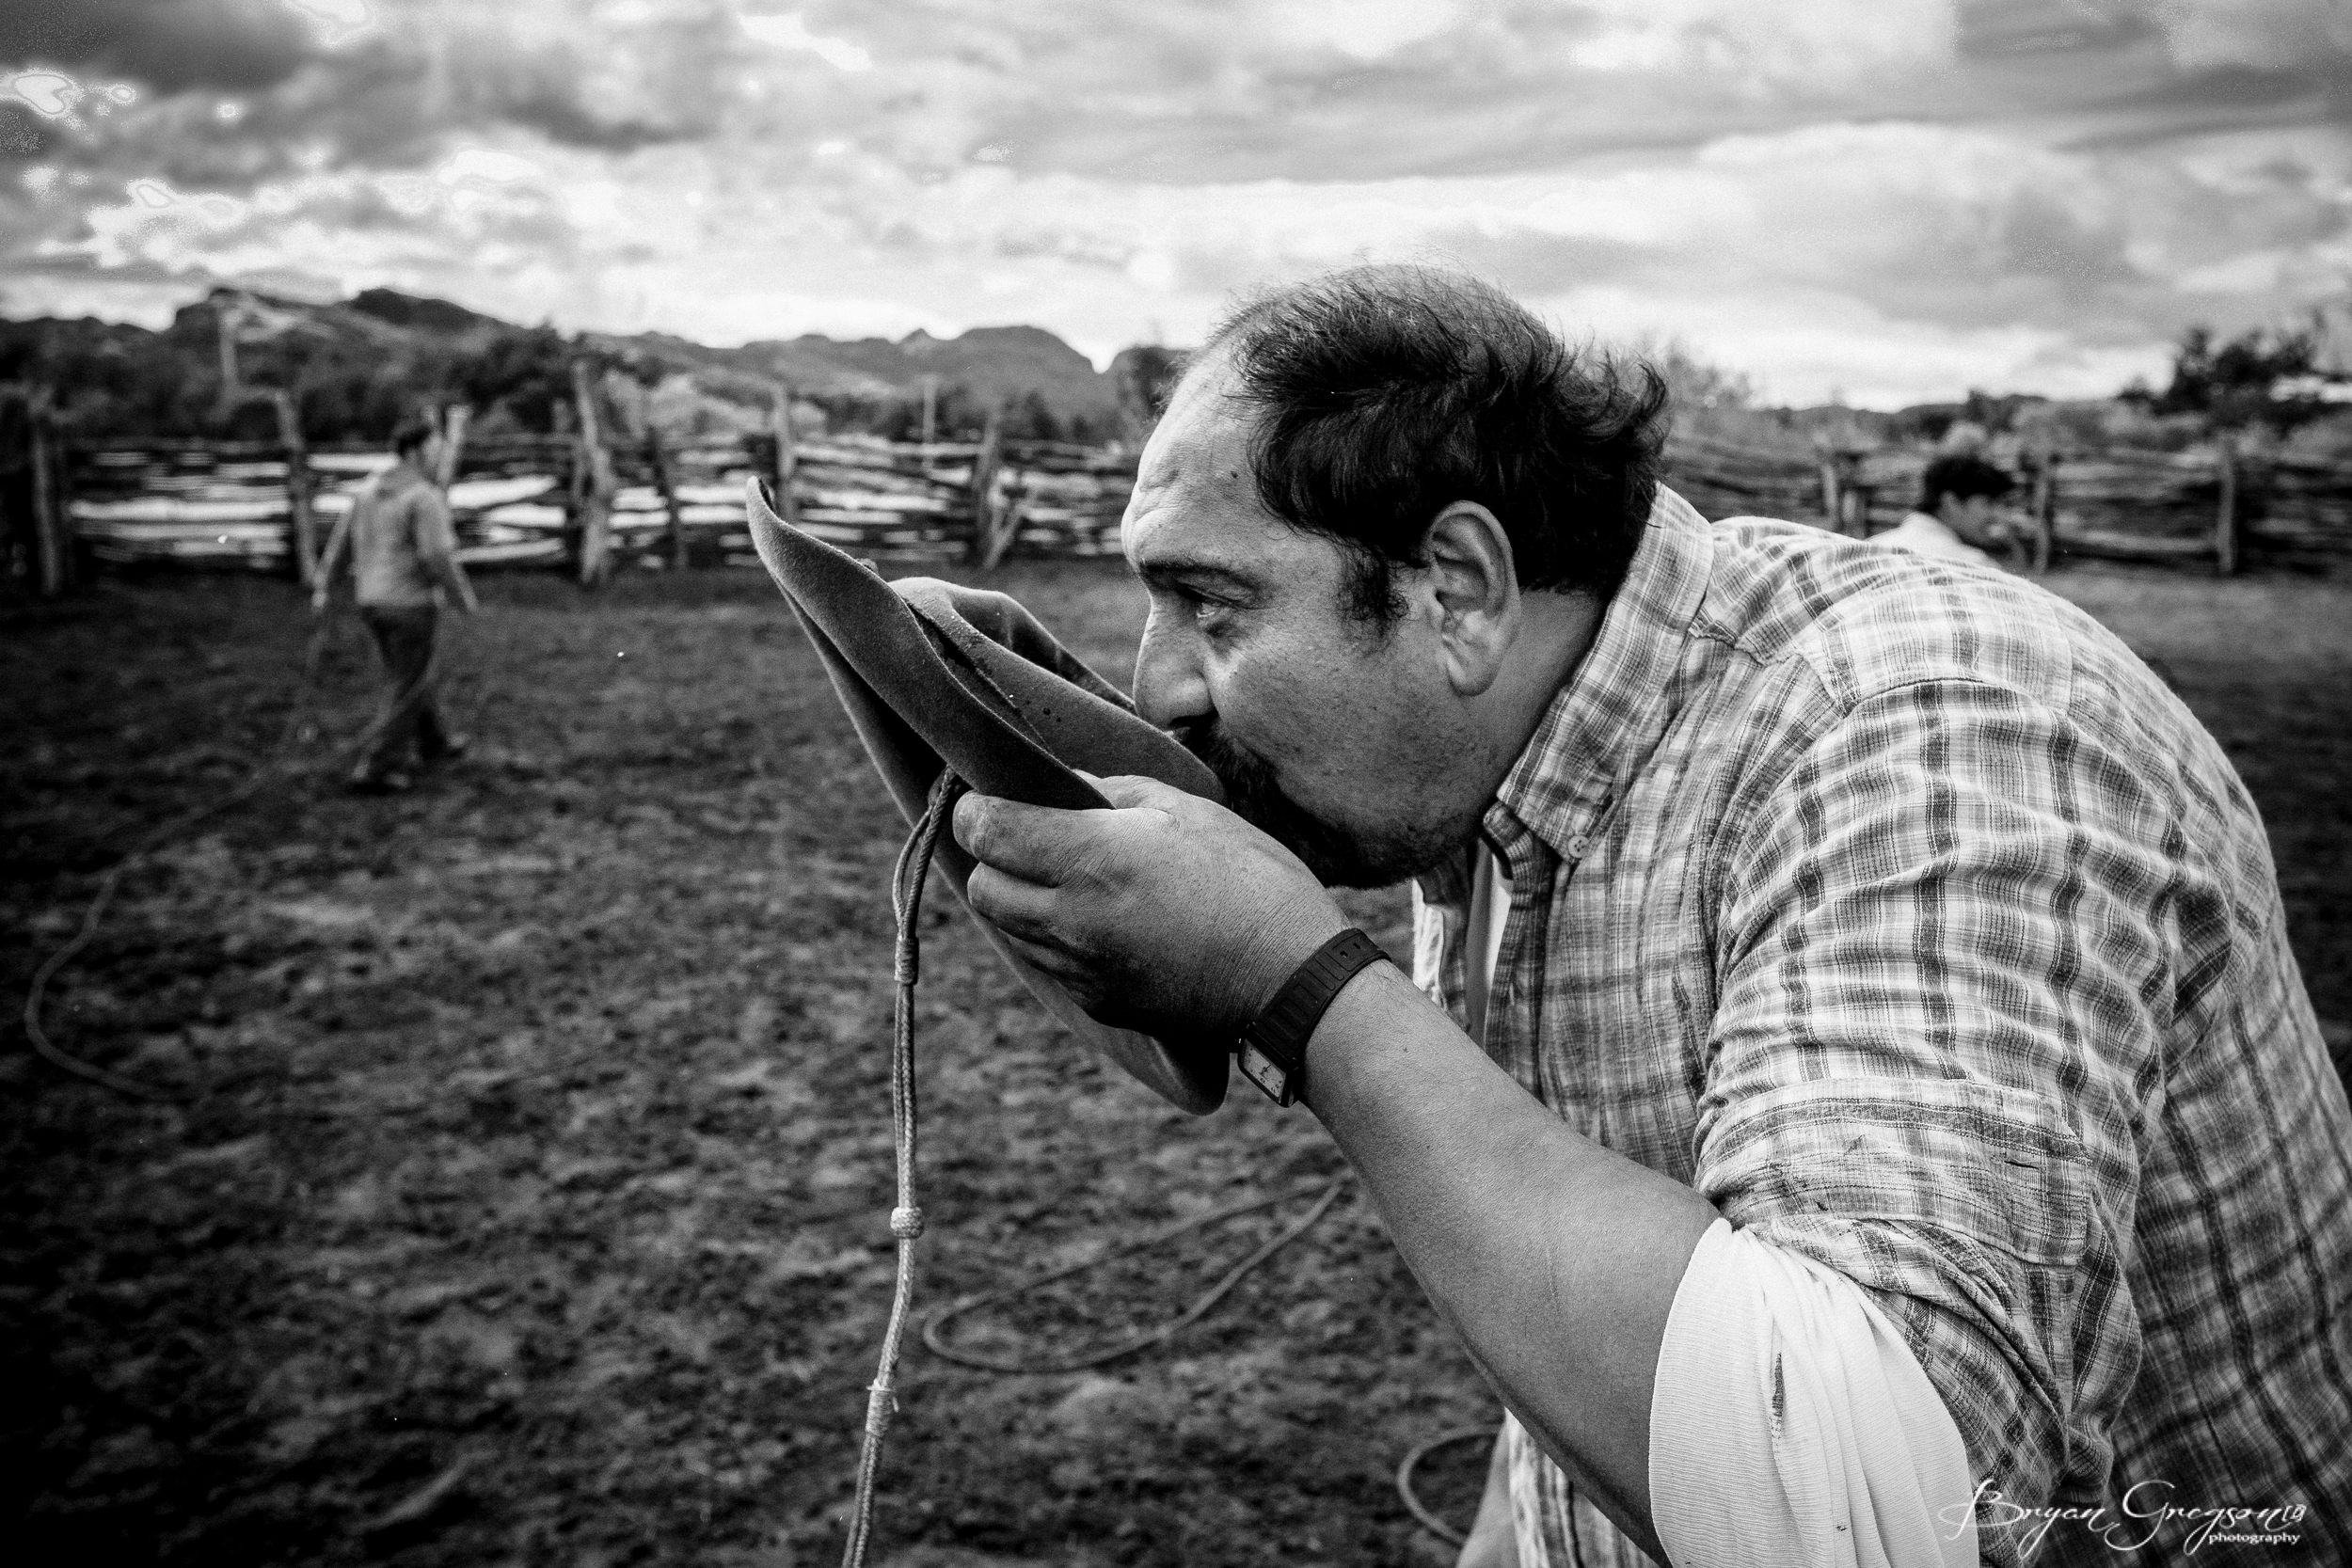 The Killer, a guacho, drinks beer from a hat. Photo:  Bryan Gregson Photography